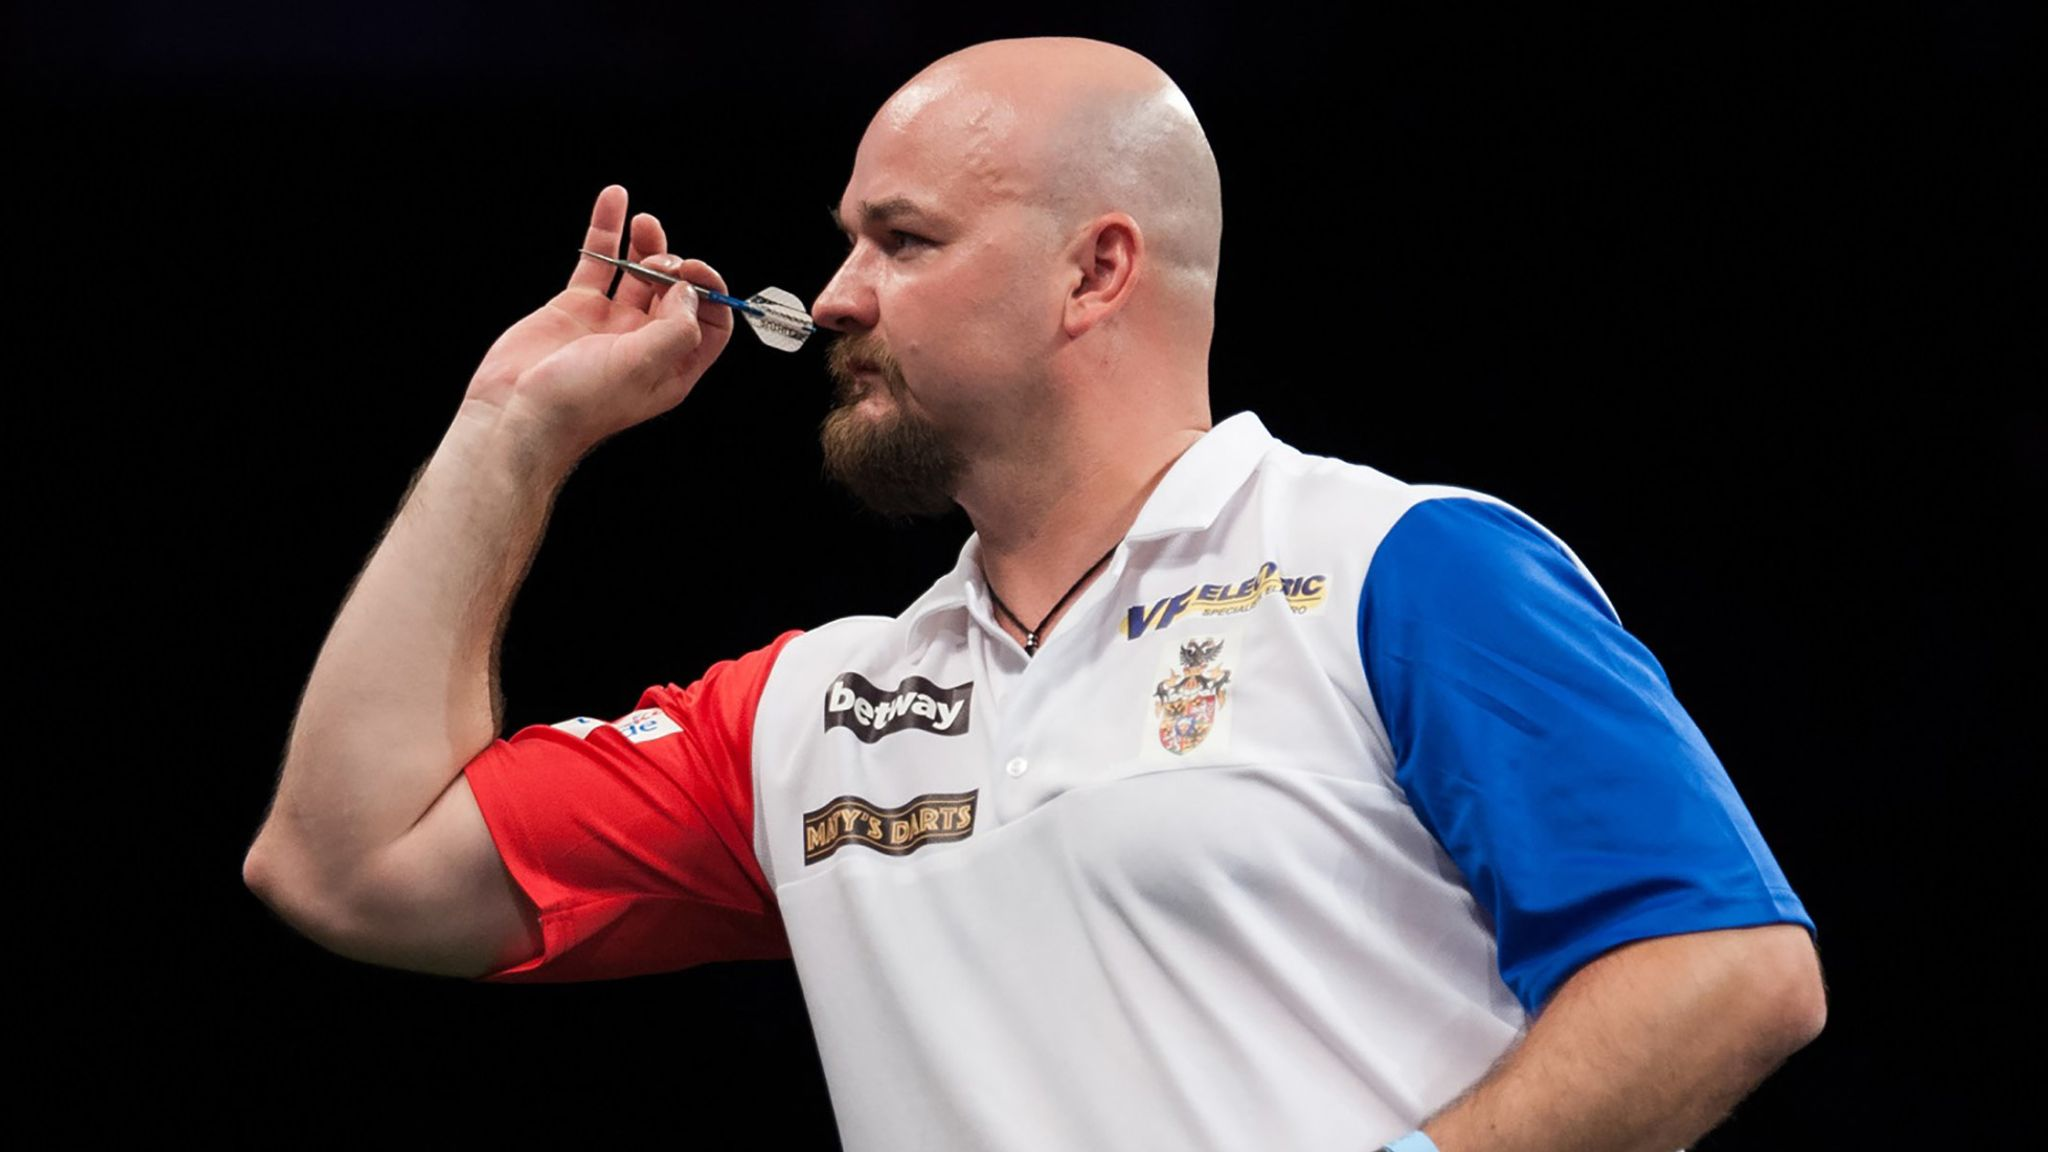 PDC Q-School: Jeff Smith, Karel Sedlacek and Aaron Beeney win Tour Cards on Day Three